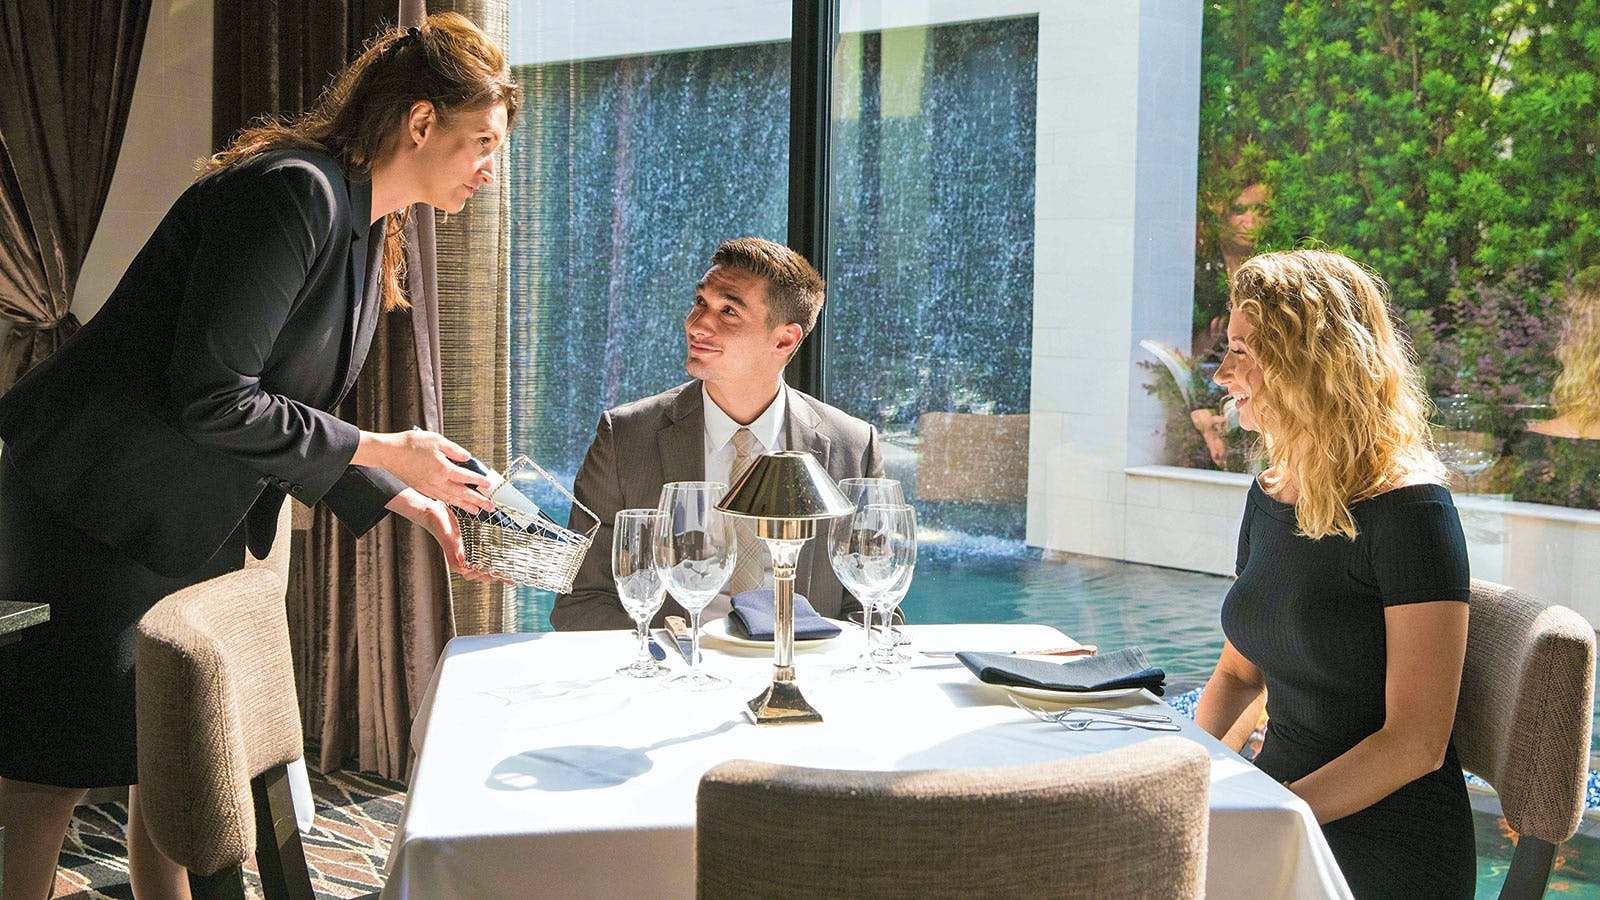 Women Sommeliers Power the Profession's Future